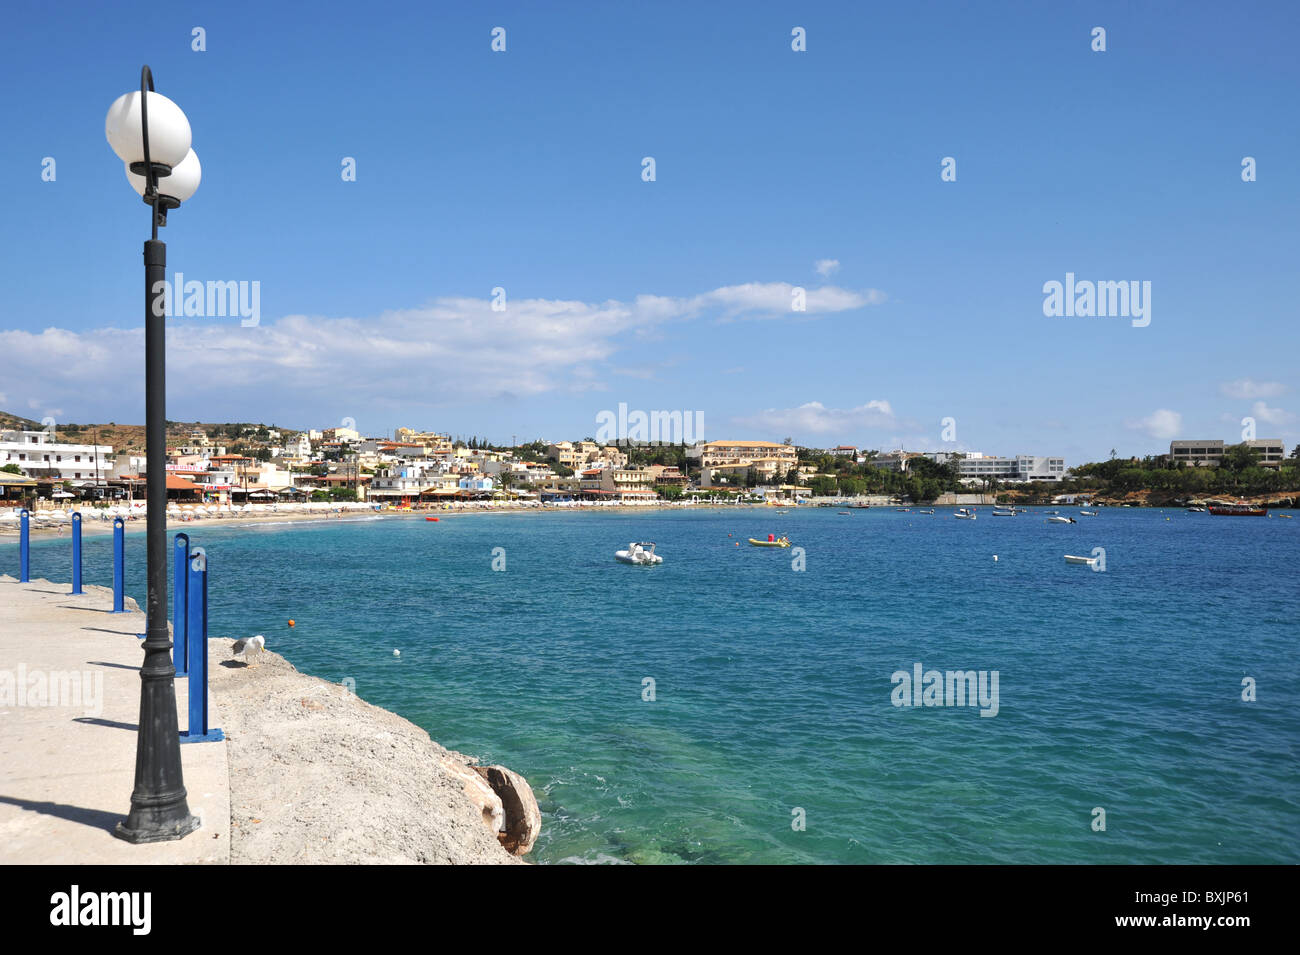 View across the bay of Agia Pelagia, Crete, Greece - Stock Image